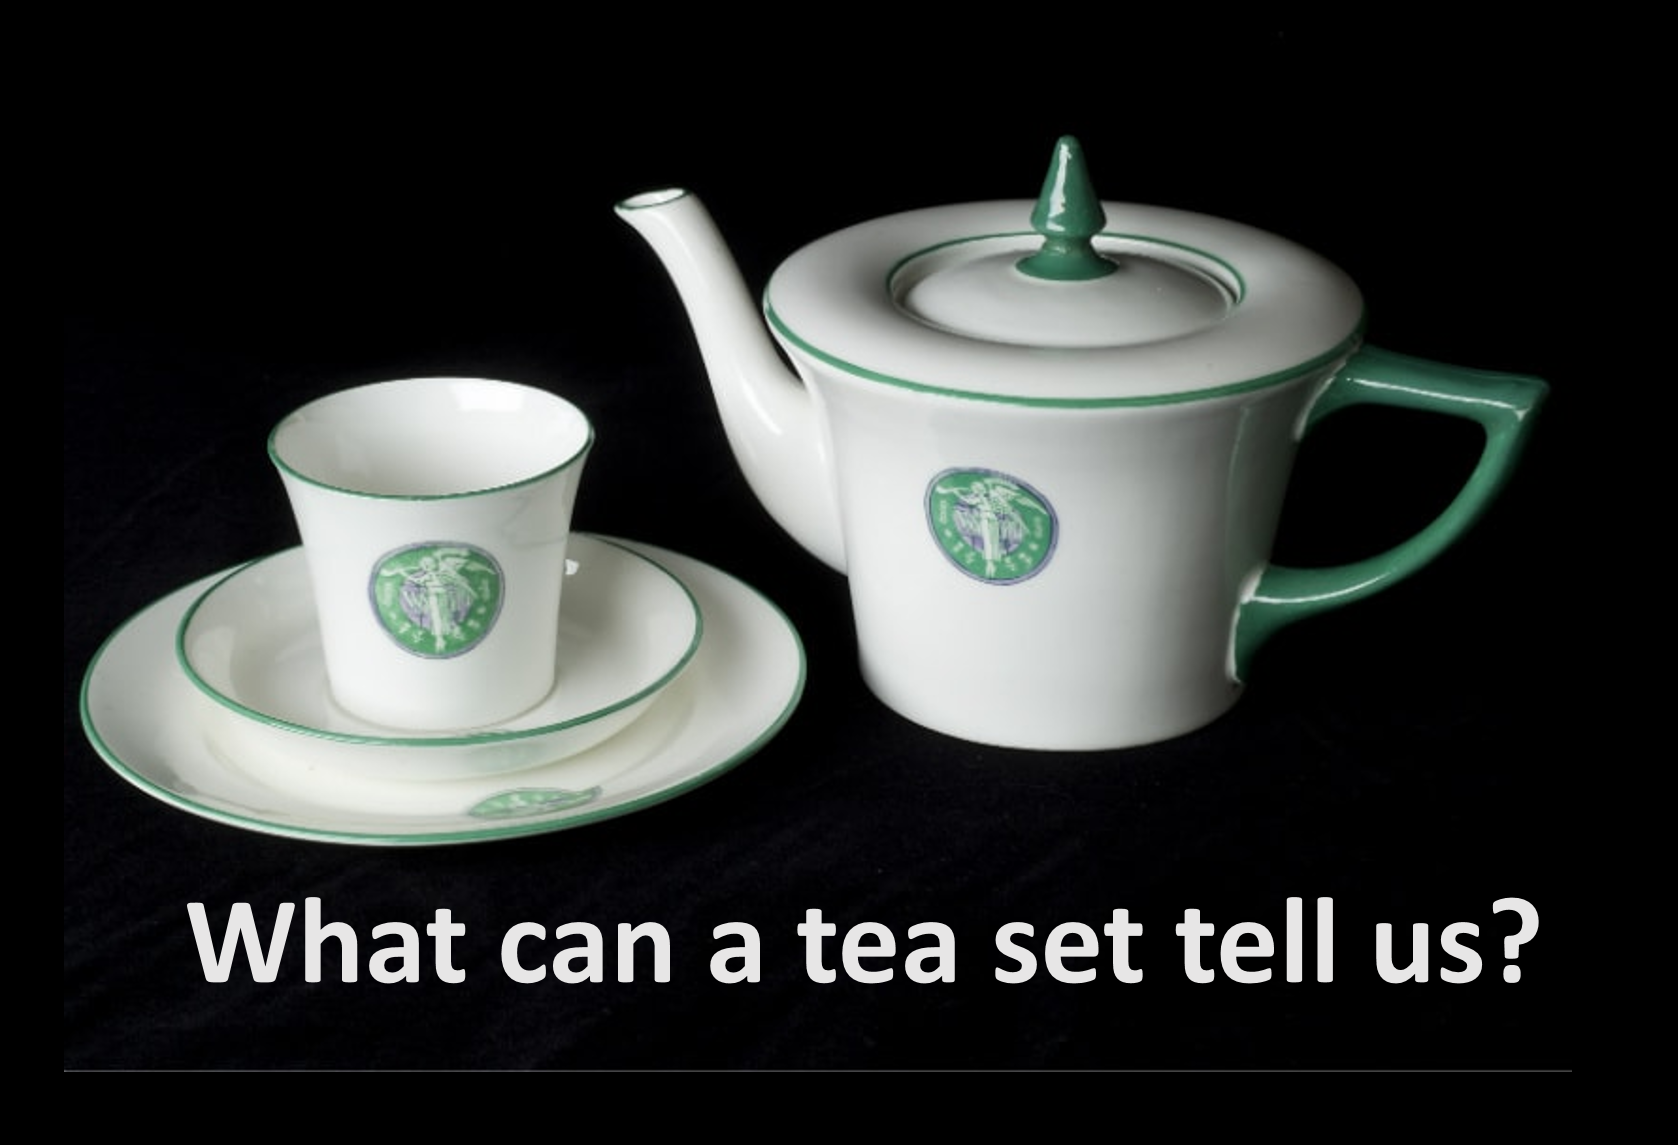 Tea set and suffrage stories